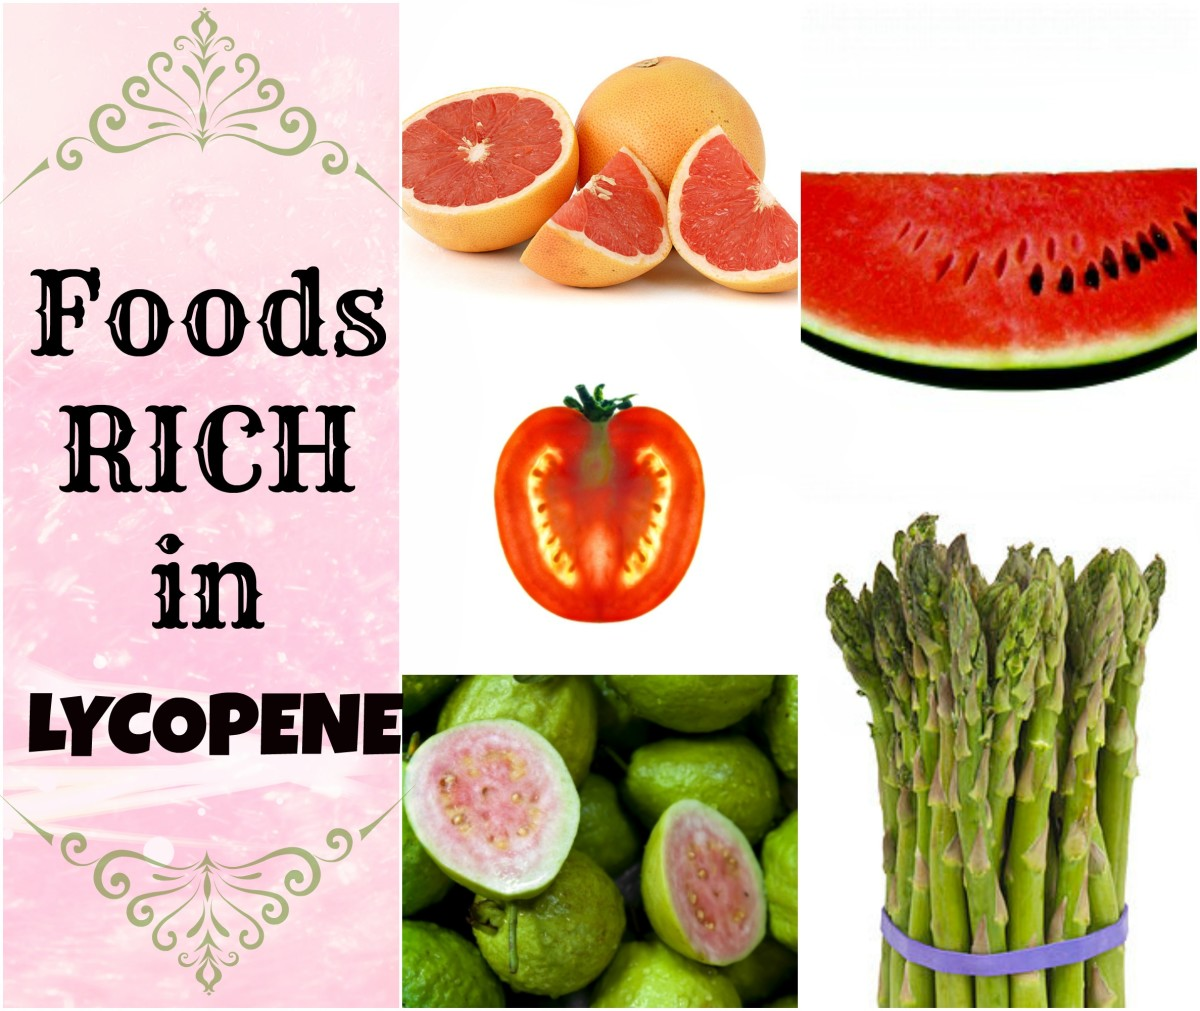 Foods Rich in Lycopene to Eat Every Day